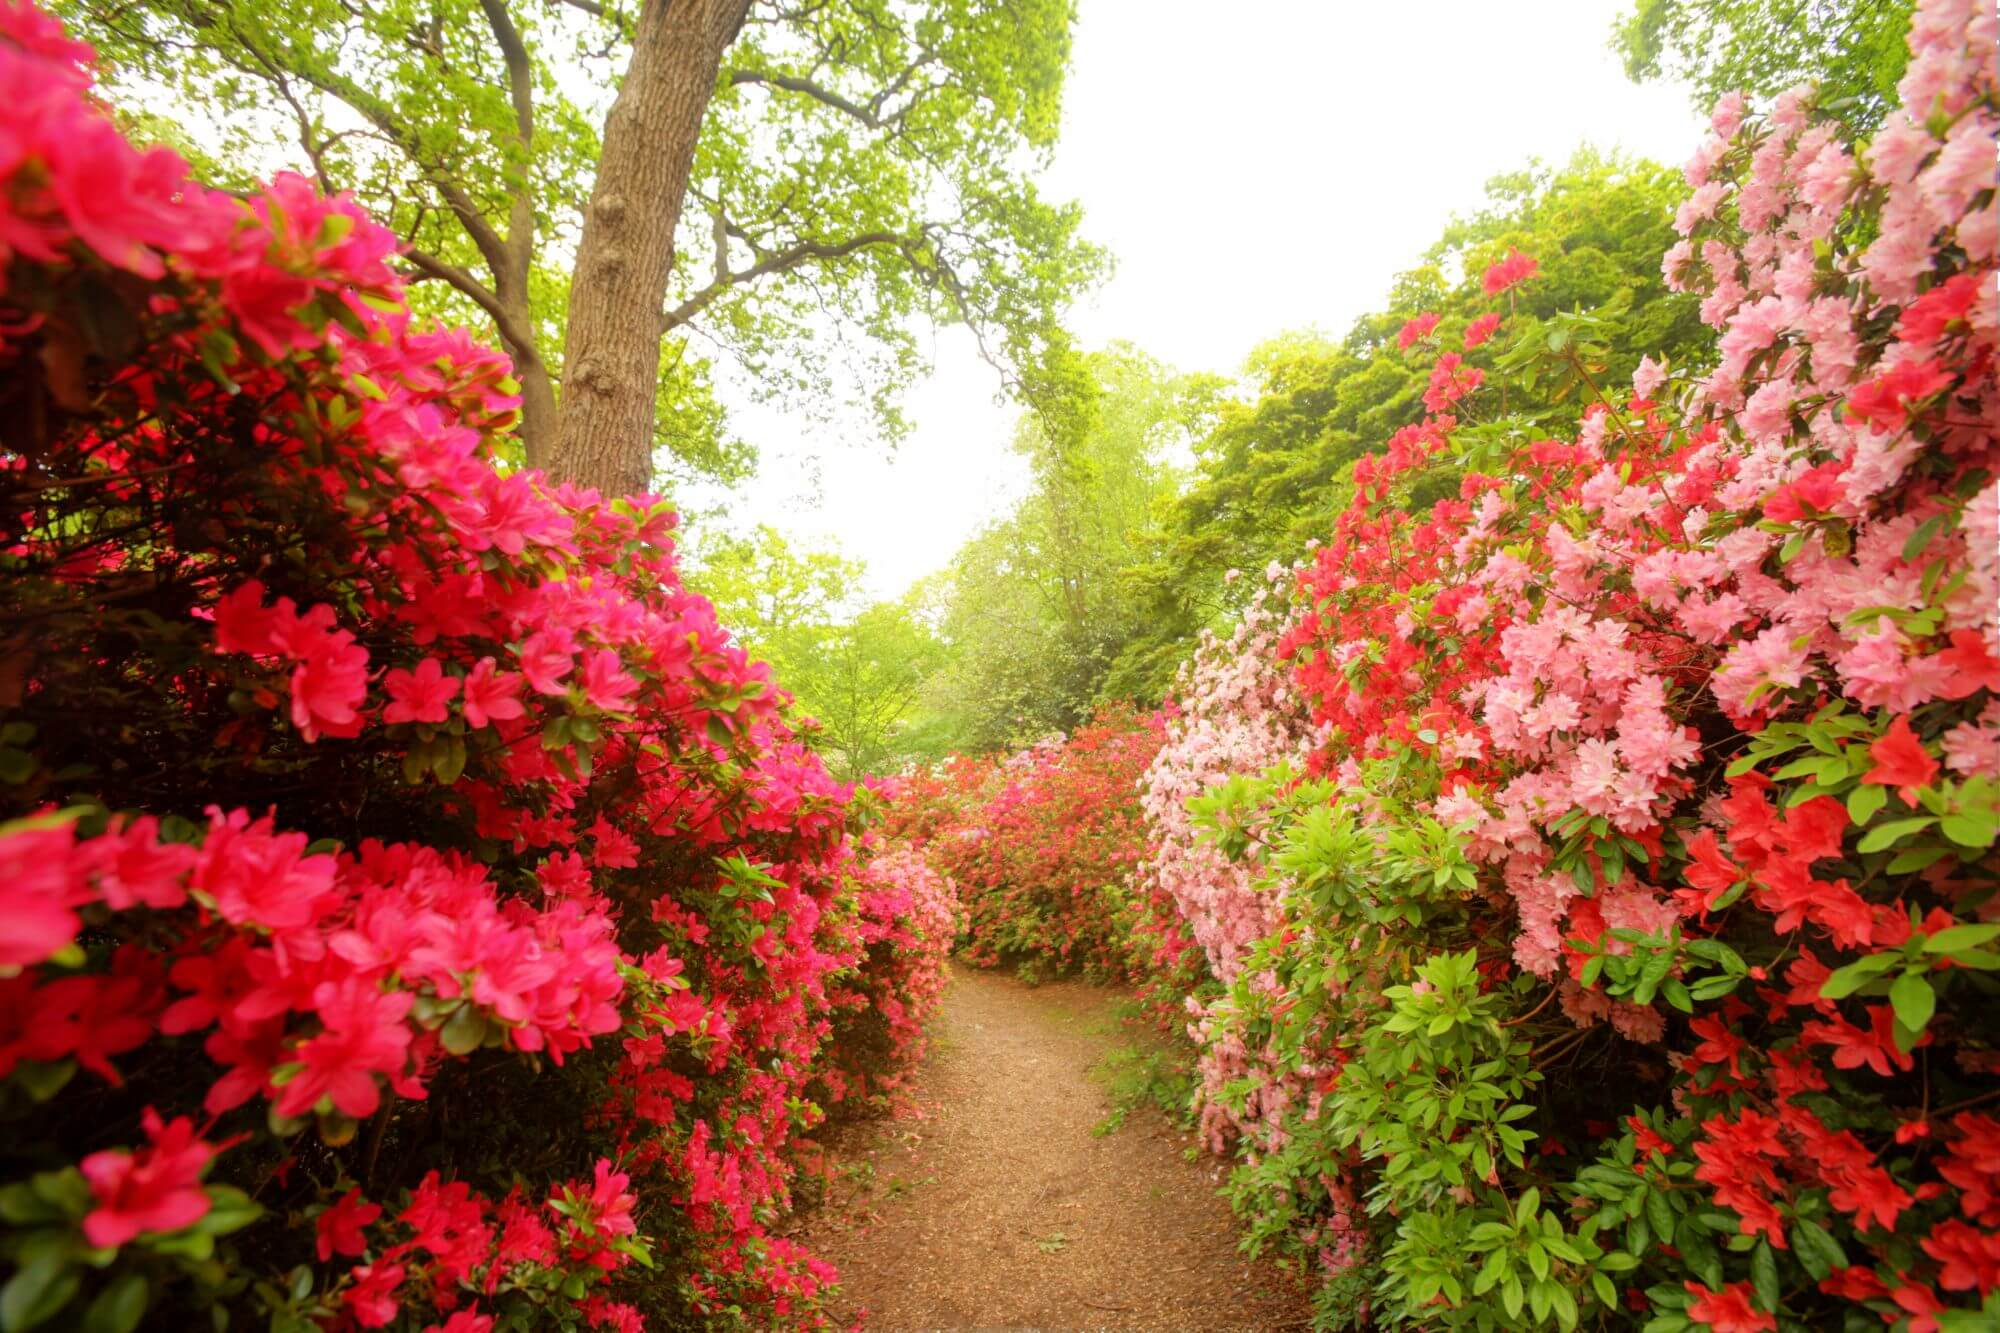 Rhododendrons in Isabella Plantation, Richmond Park.